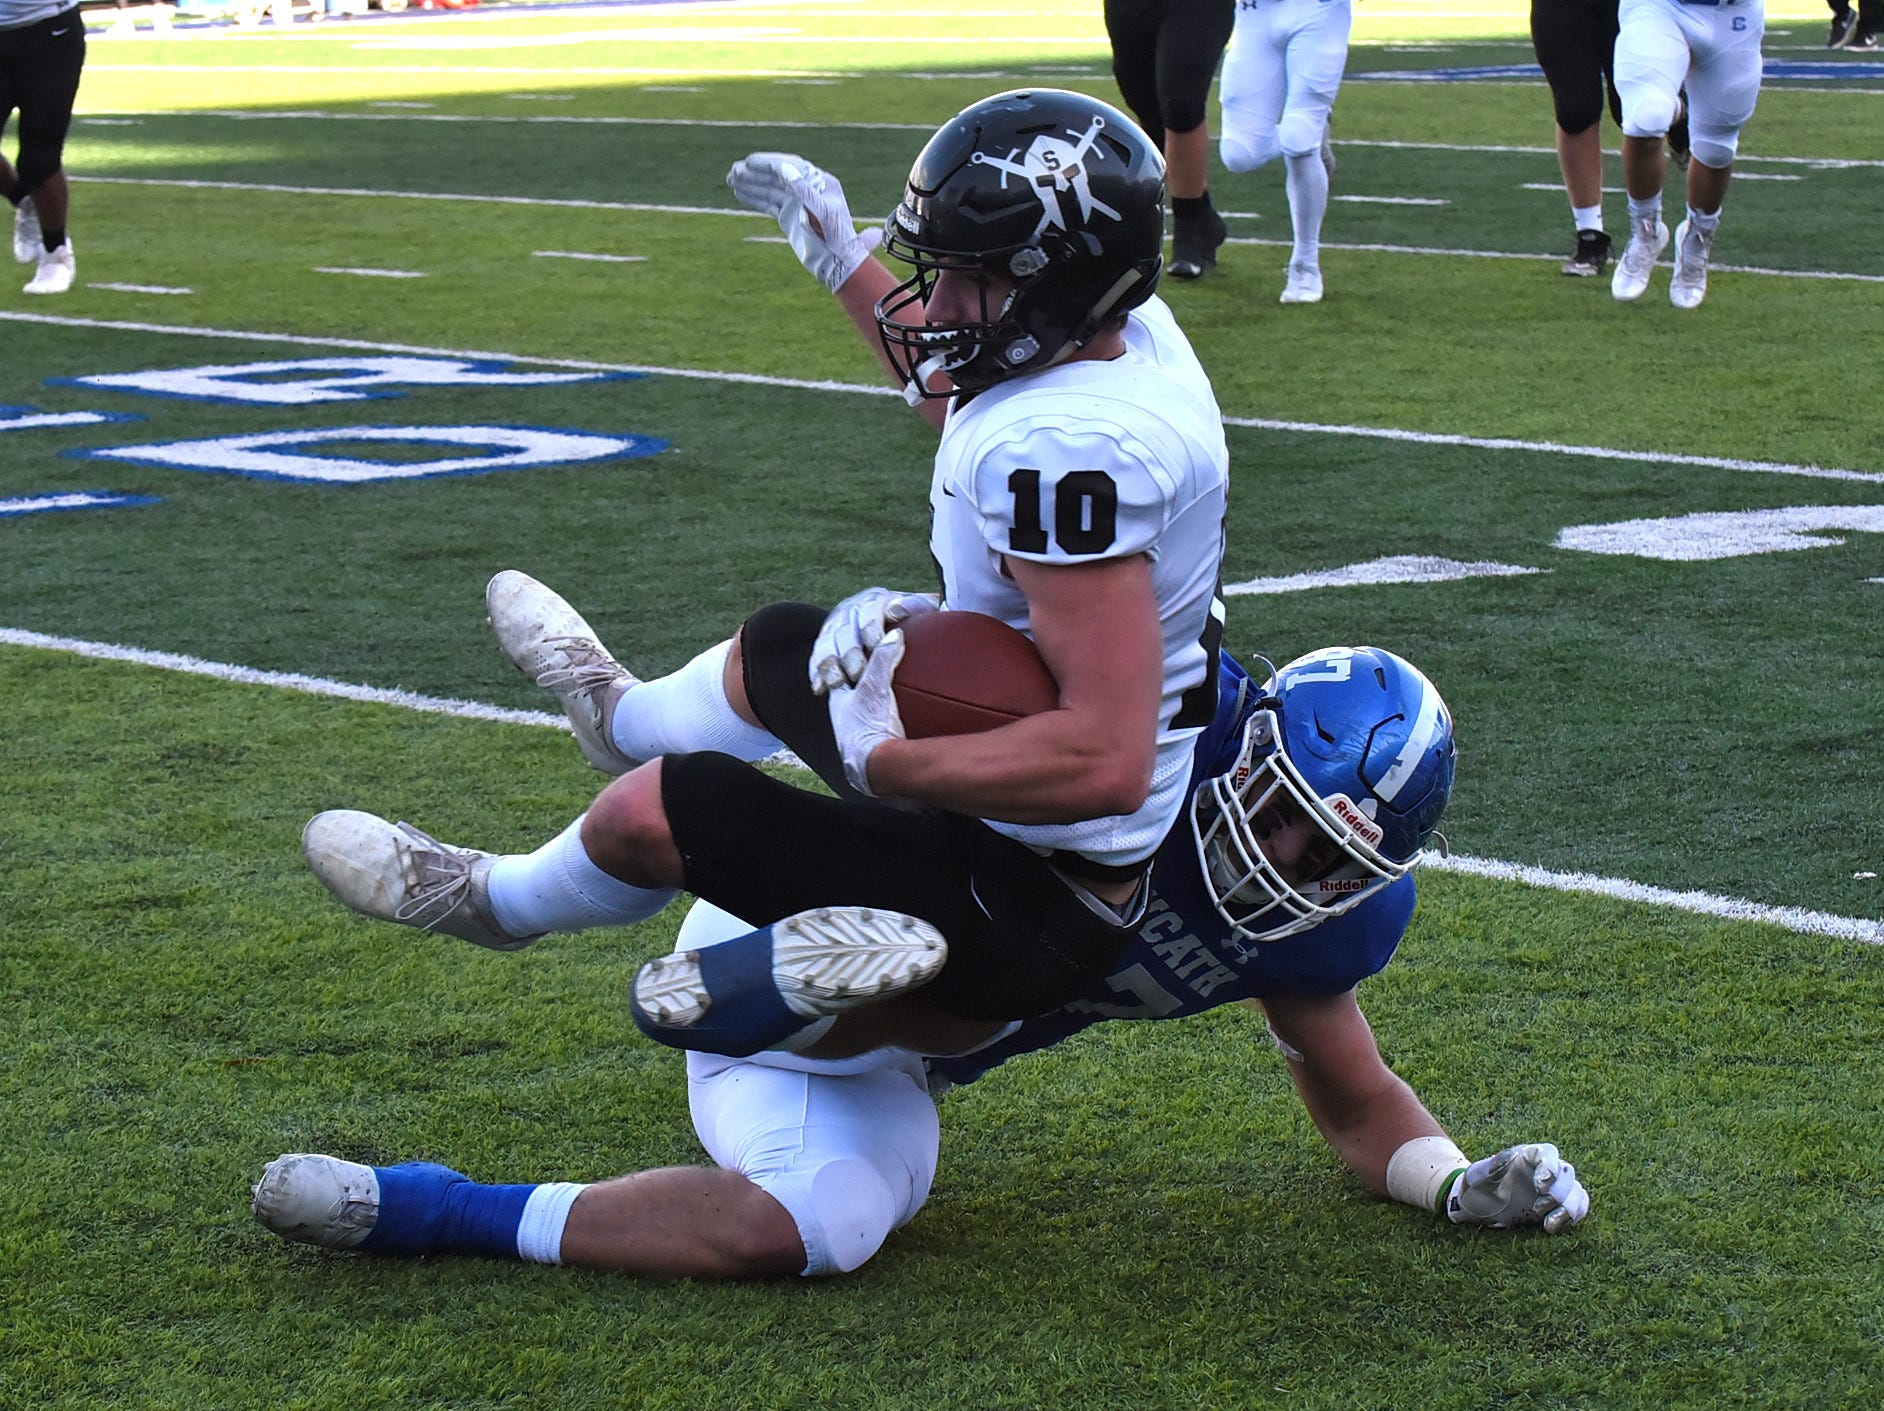 Covington Catholic's Michael Mayer drops Clayton Bush (10) of South Warren after making a first down catch for the Spartans in the 2018 KHSAA 5A State Football Championship, December 2, 2018.